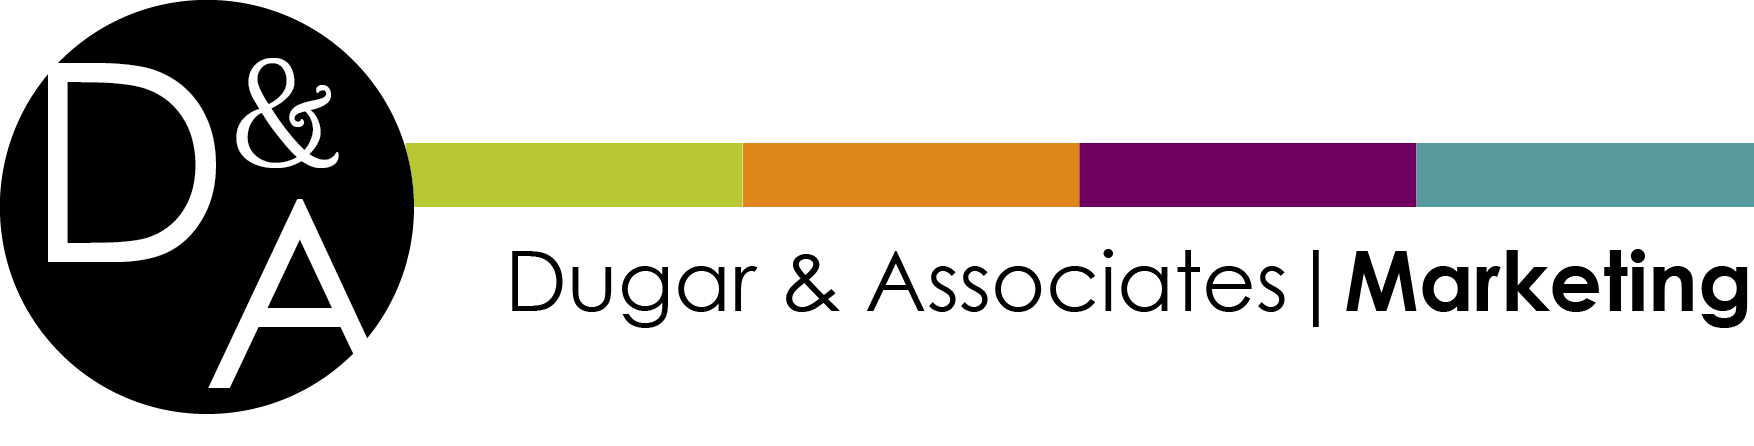 Dugar And Associates Marketing